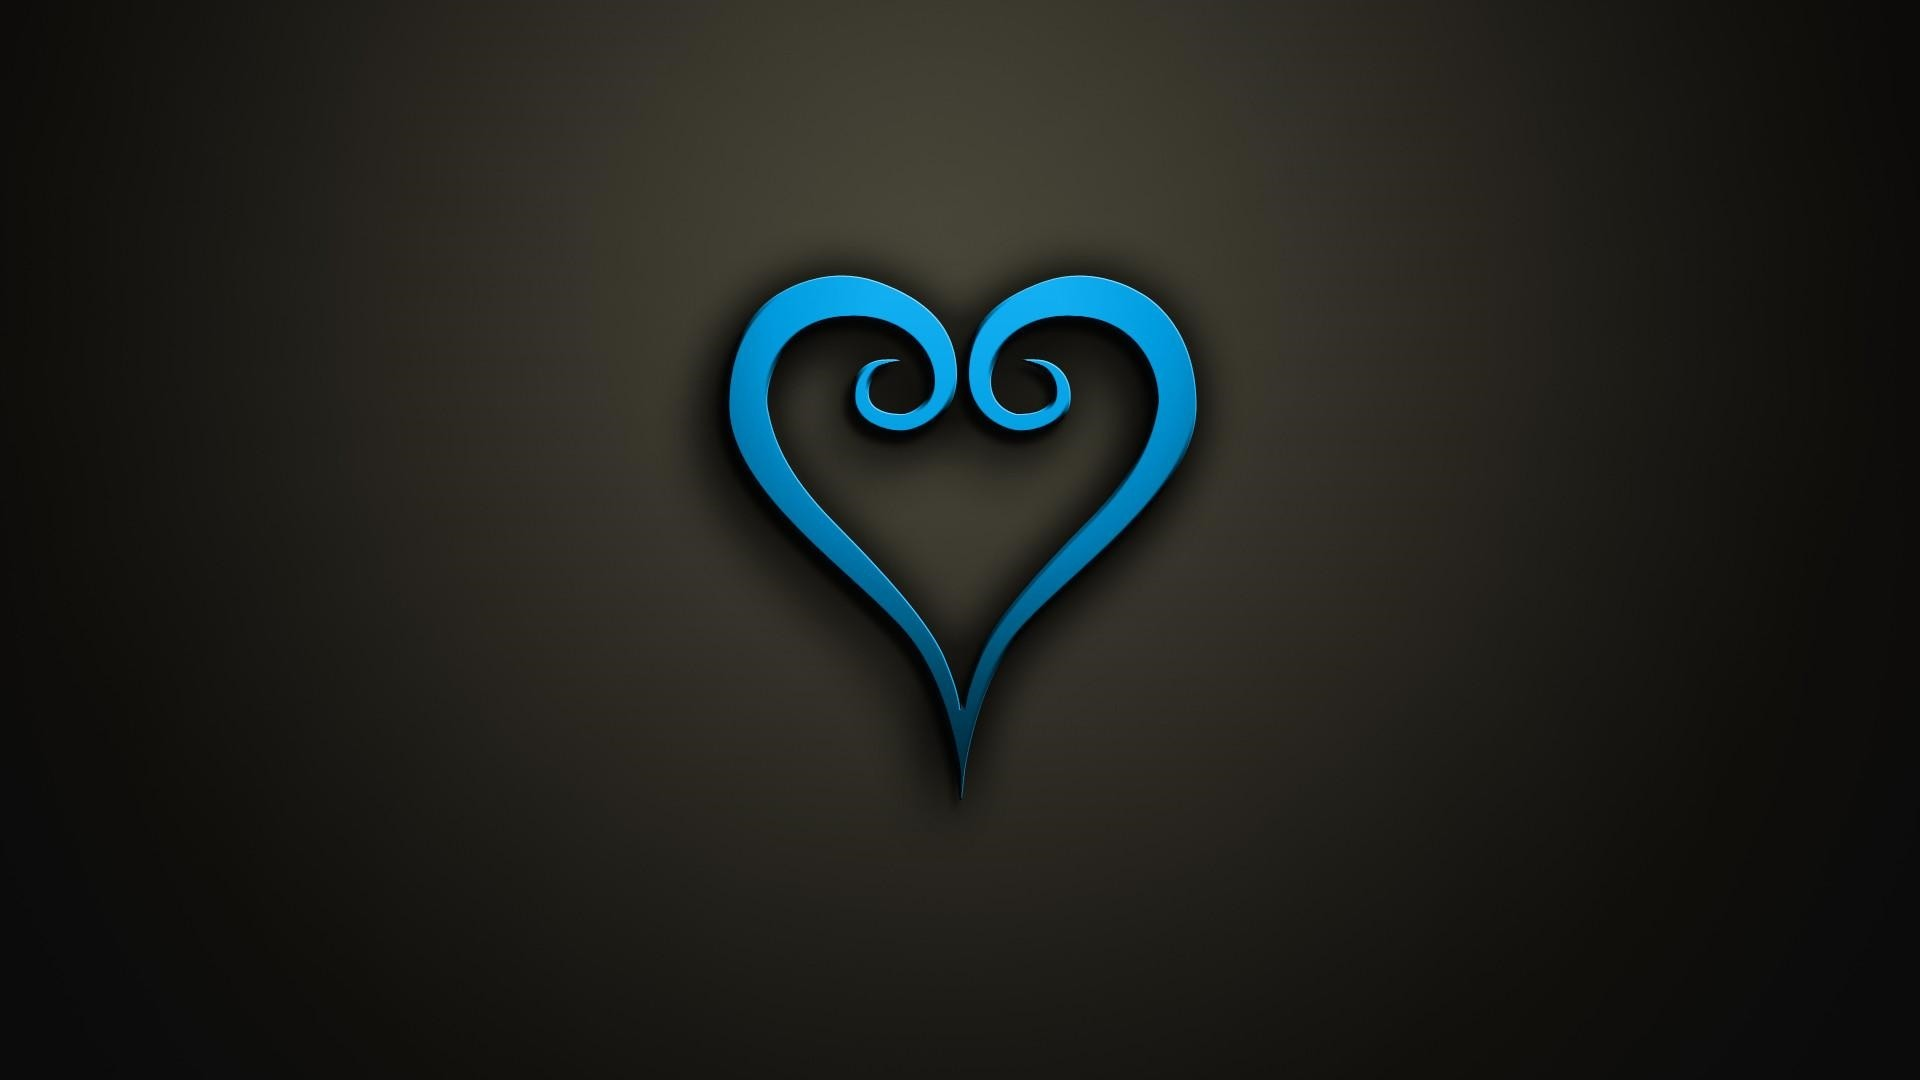 Kingdom Hearts Heartless Wallpaper (70+ images)